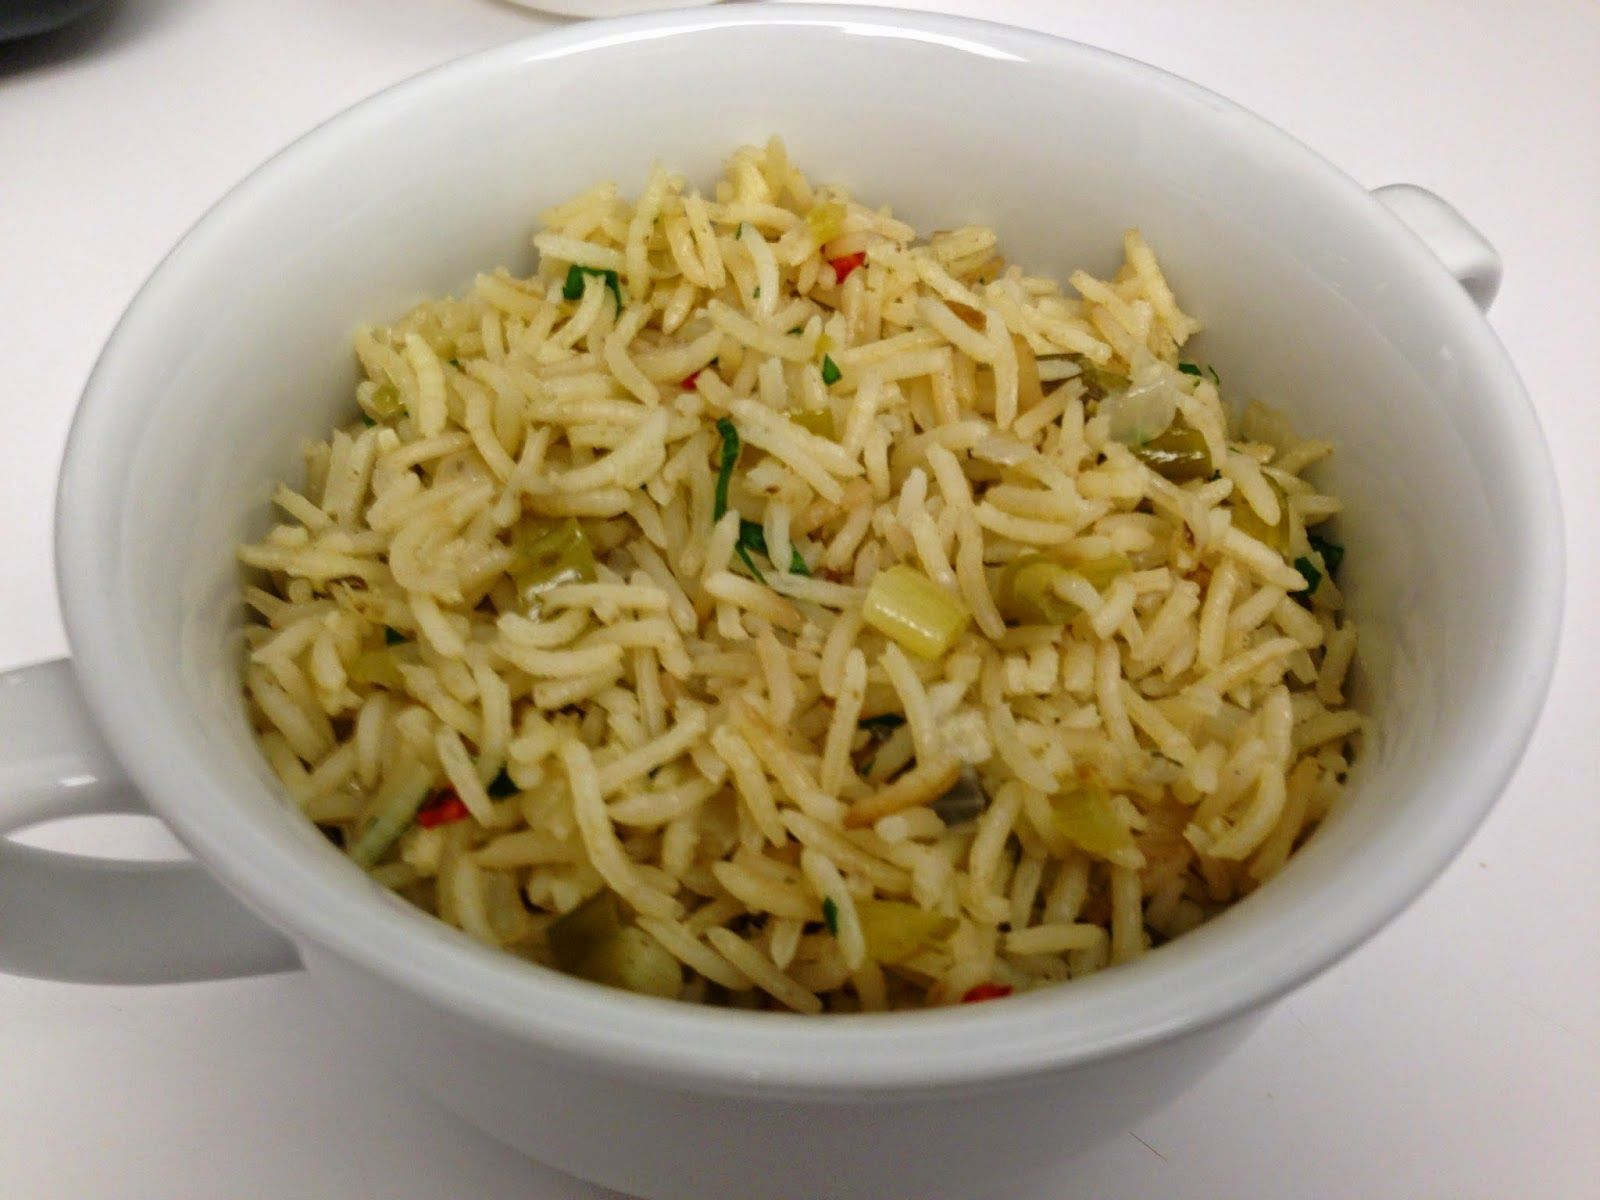 Easy Rice Pilaf Recipe #easyricepilaf Easy Rice Pilaf Recipe #easyricepilaf Easy Rice Pilaf Recipe #easyricepilaf Easy Rice Pilaf Recipe #easyricepilaf Easy Rice Pilaf Recipe #easyricepilaf Easy Rice Pilaf Recipe #easyricepilaf Easy Rice Pilaf Recipe #easyricepilaf Easy Rice Pilaf Recipe #easyricepilaf